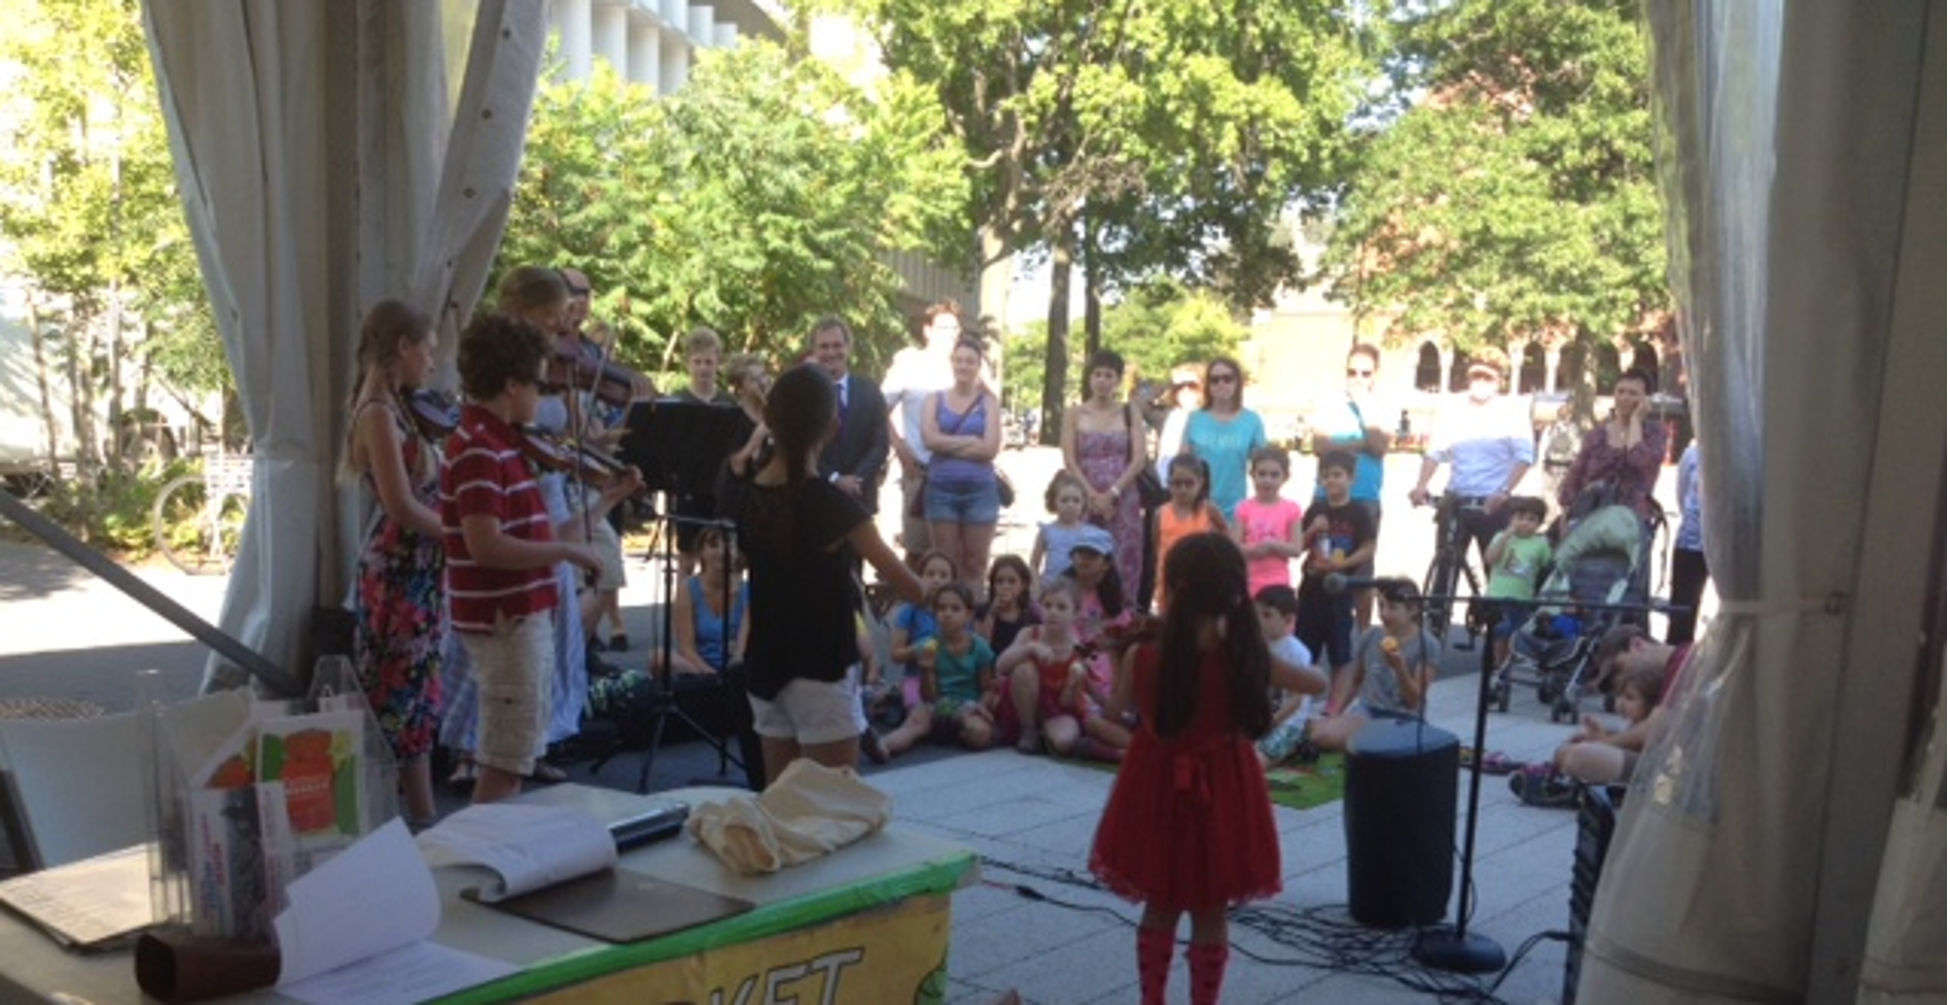 Farmers Market and kids playing music